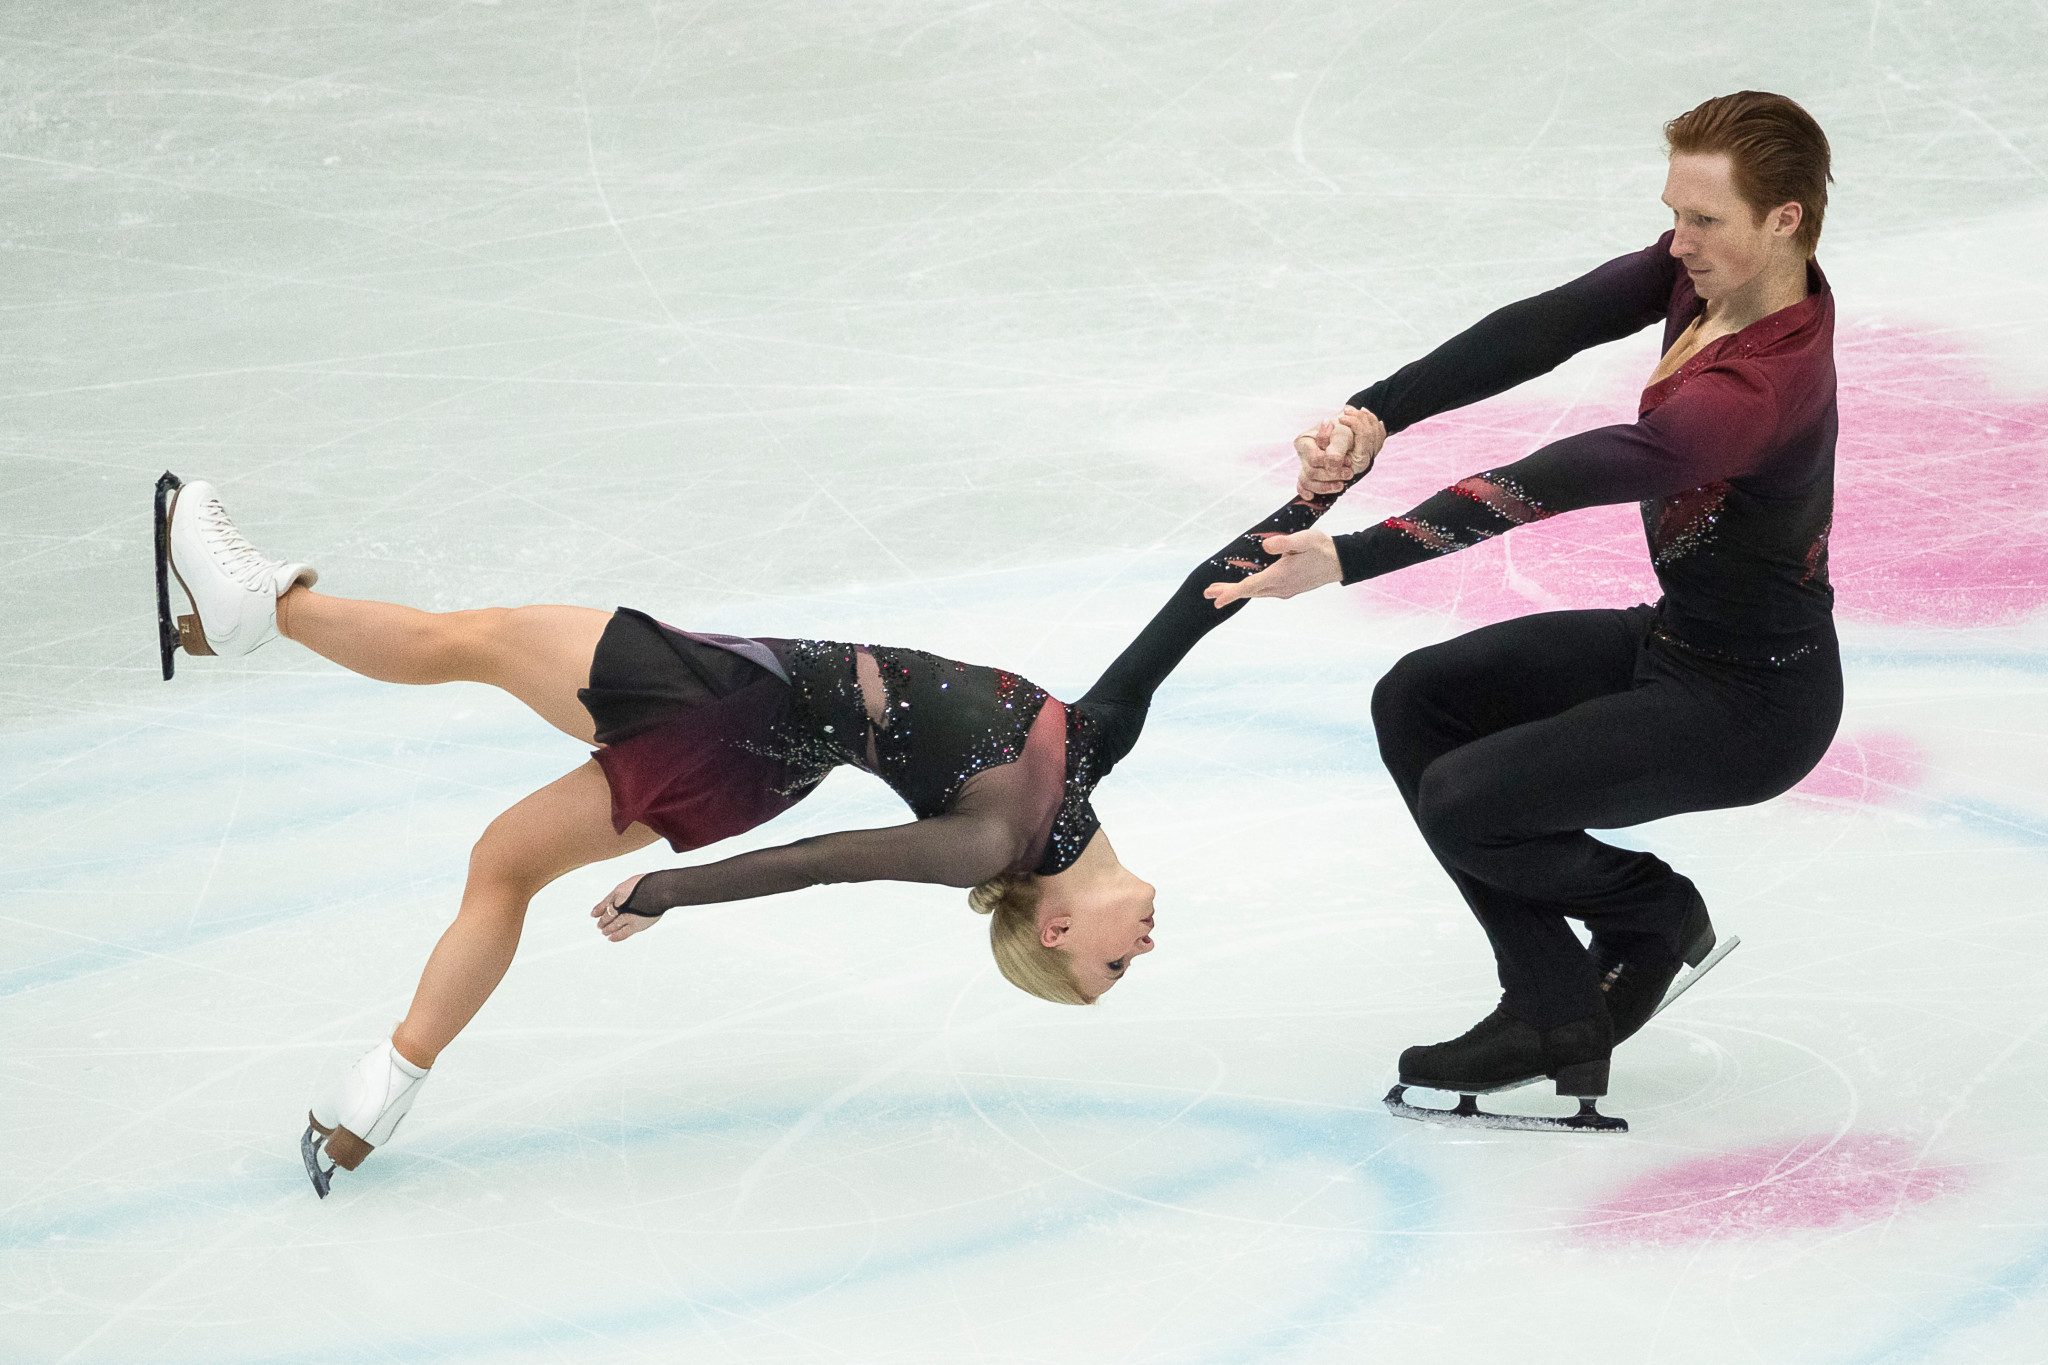 Russia's Evgenia Tarasova and Vladimir Morozov lead at the halfway point of the pairs competition ©Getty Images